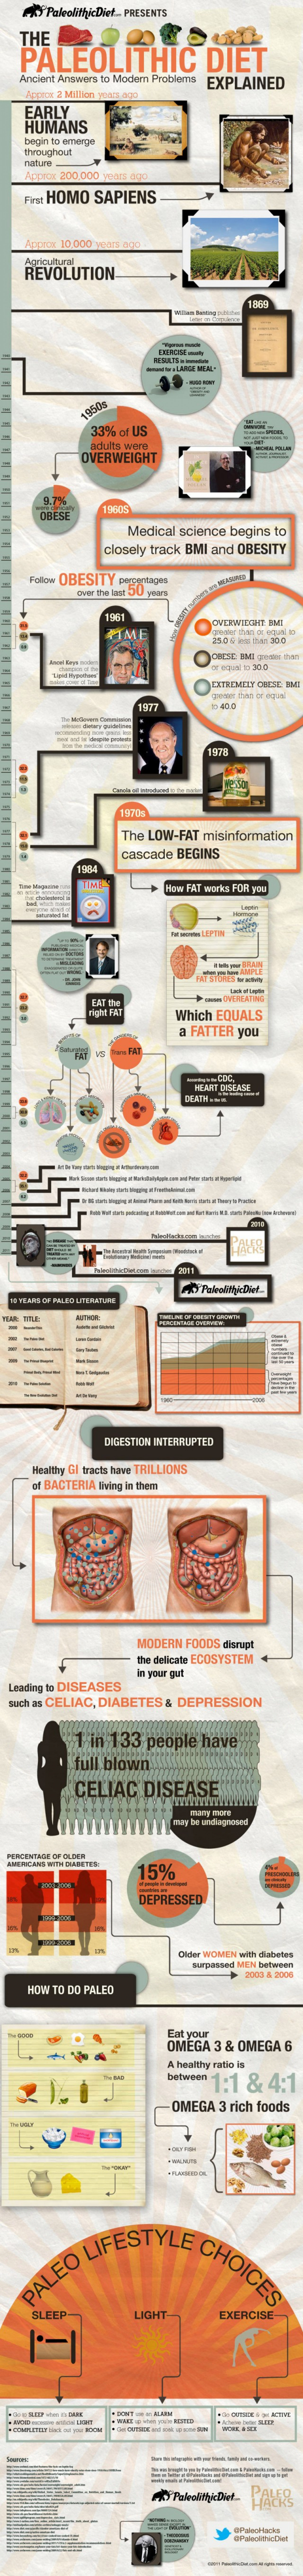 The Paleolithic Diet Explained Infographic